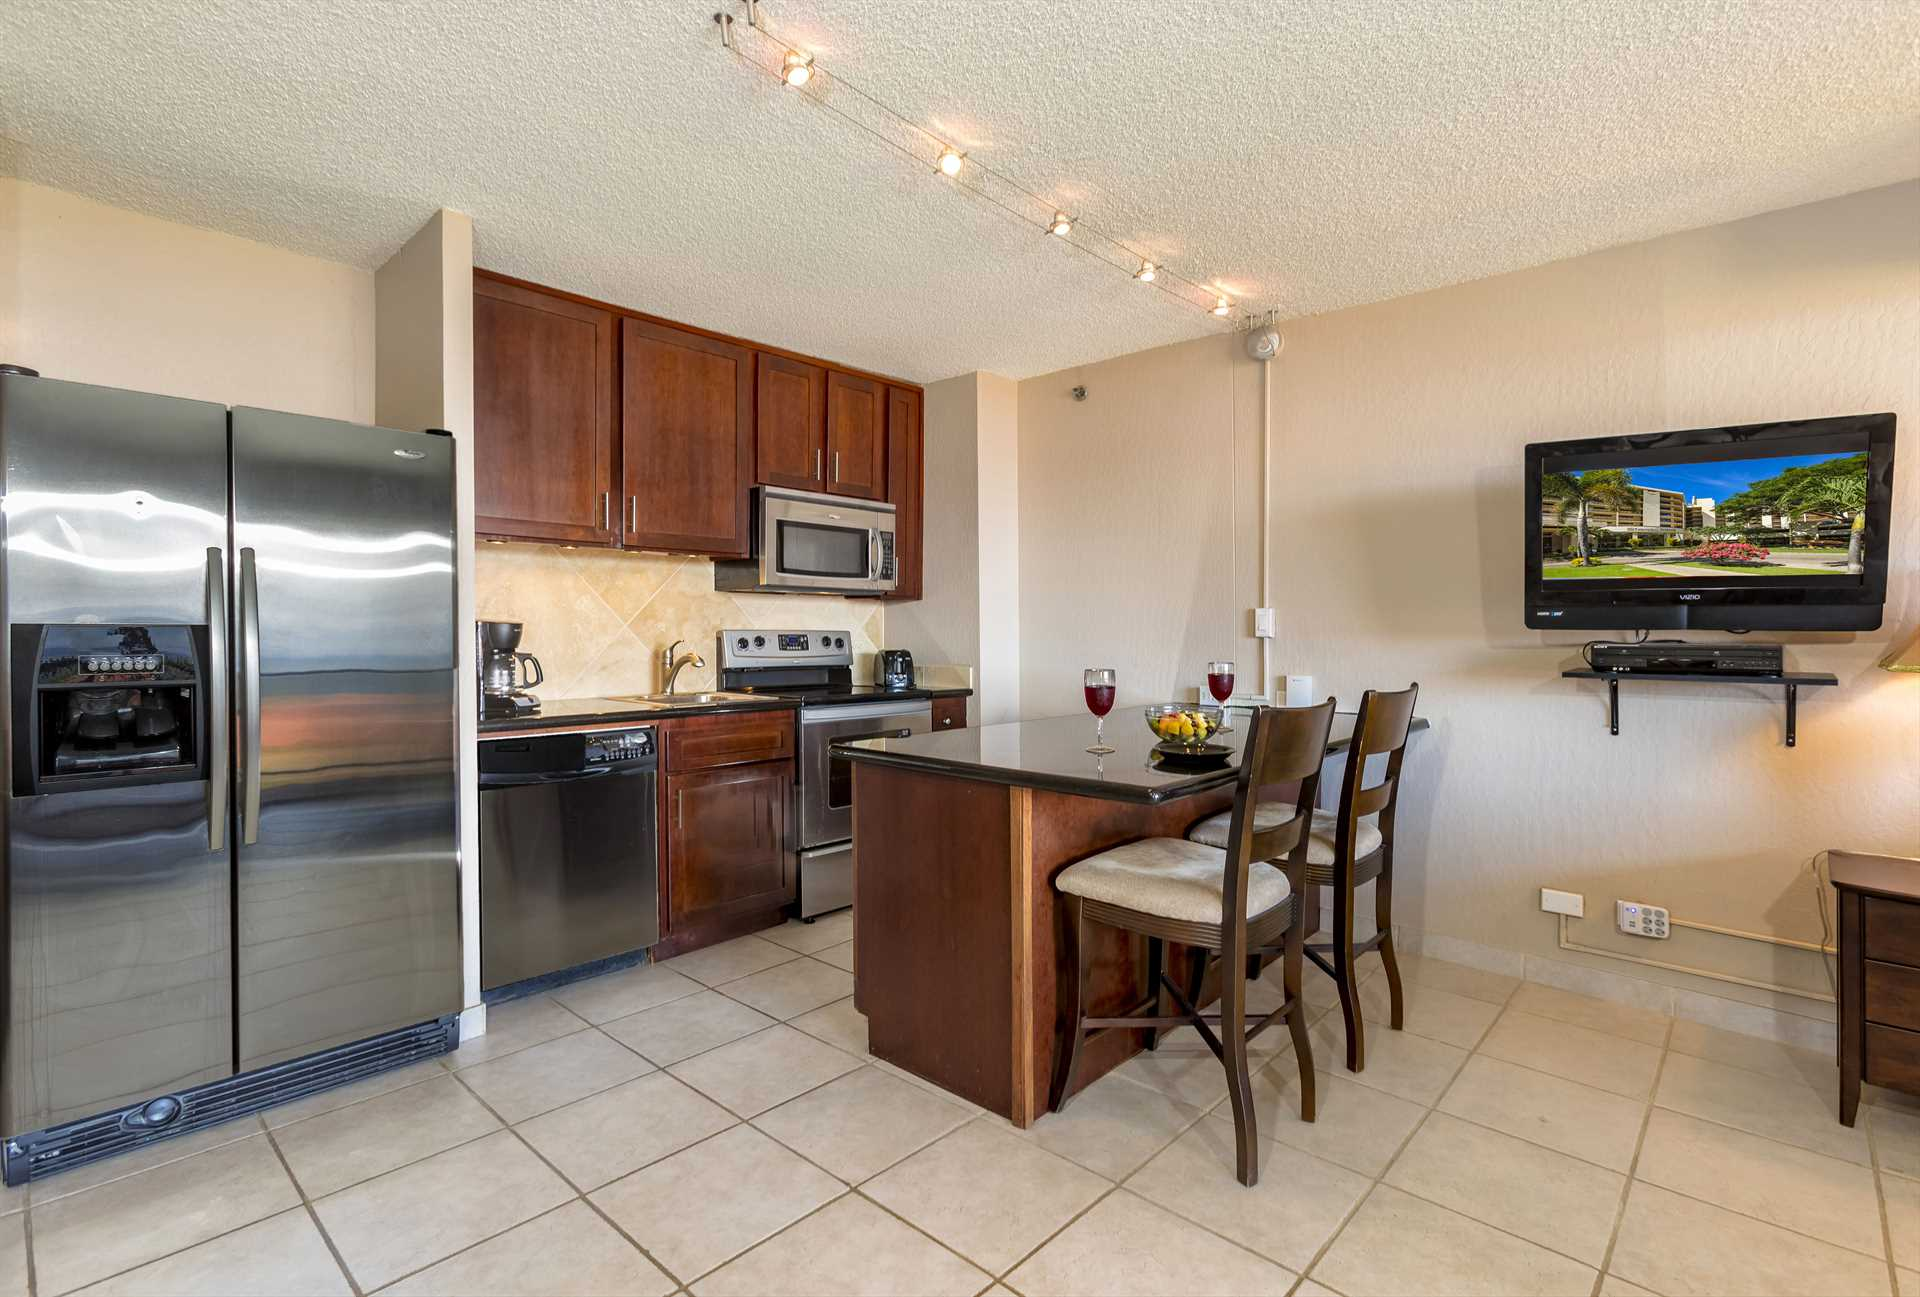 Well-appointed and upgraded kitchen